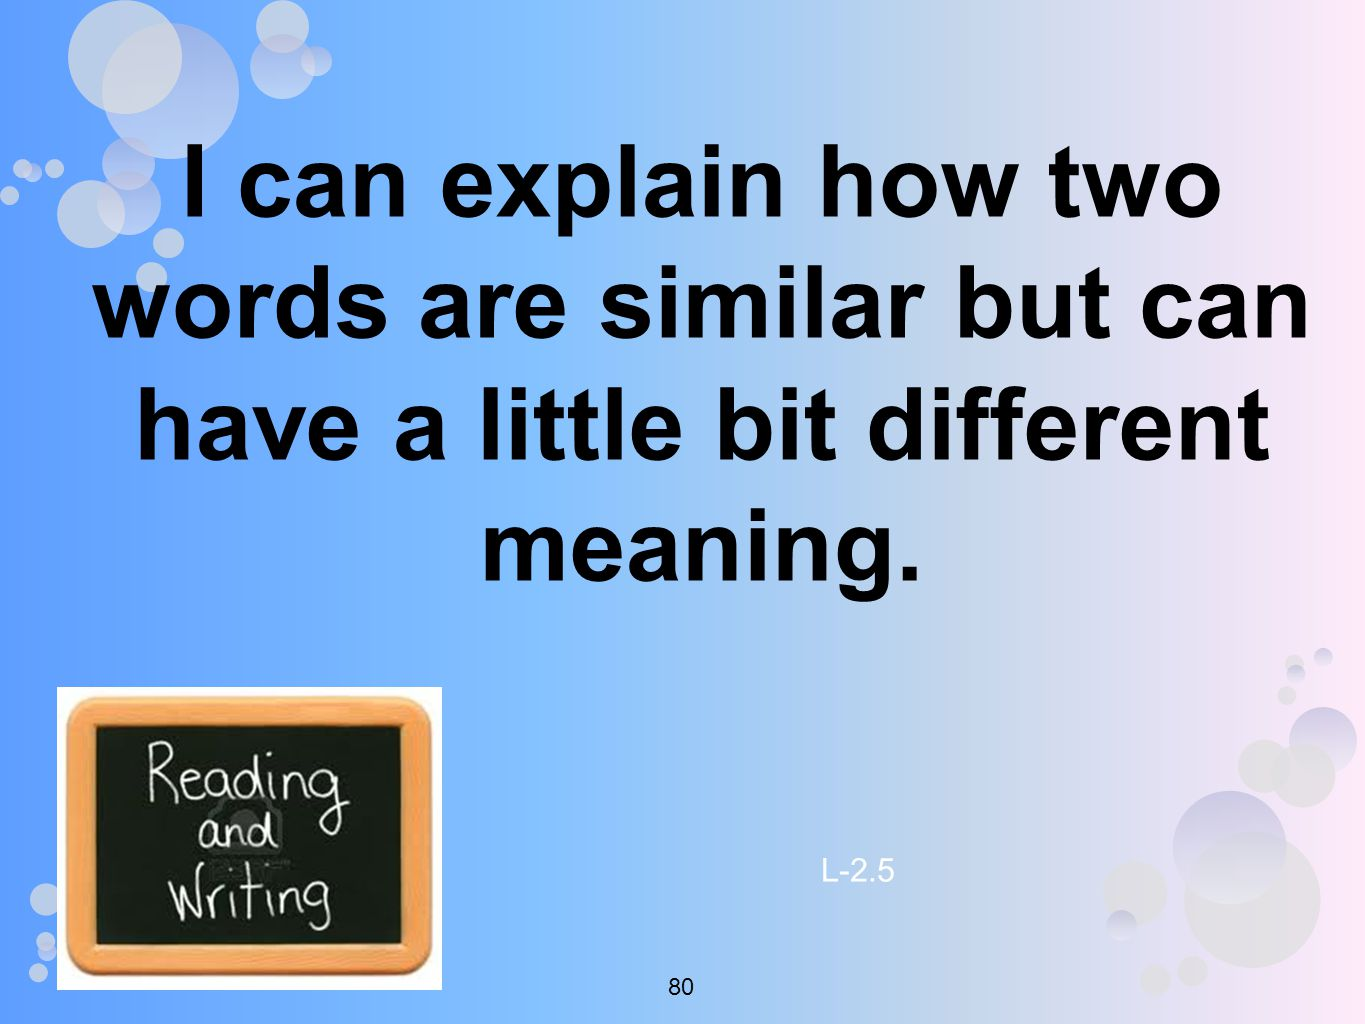 I can explain how two words are similar but can have a little bit different meaning. L